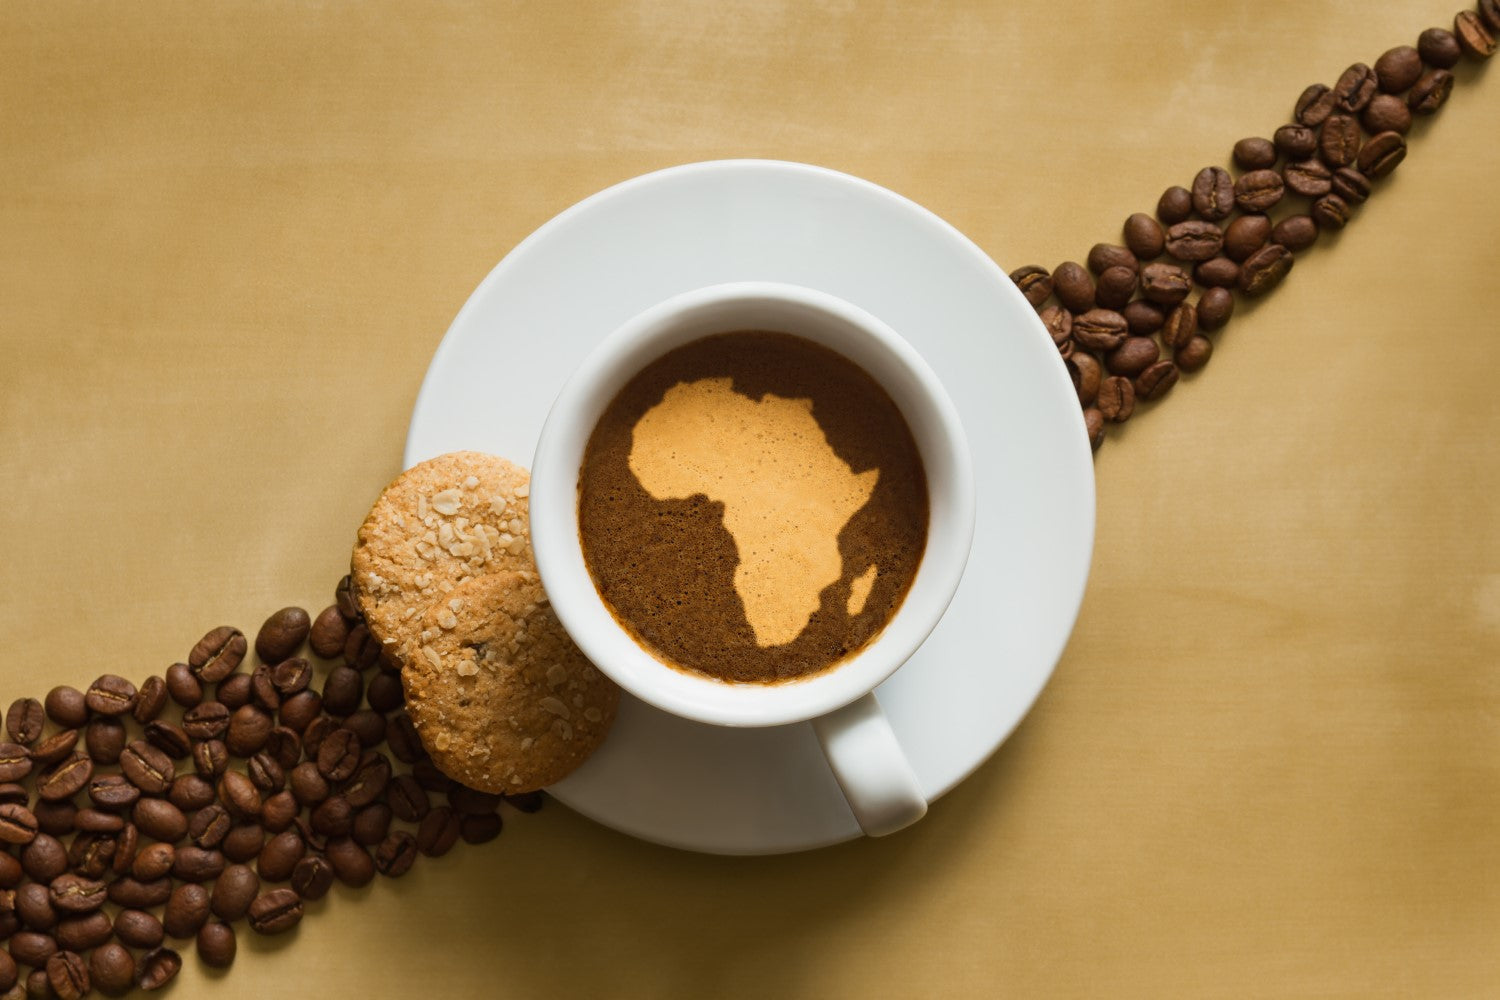 grind coffee on a cup with map of africa